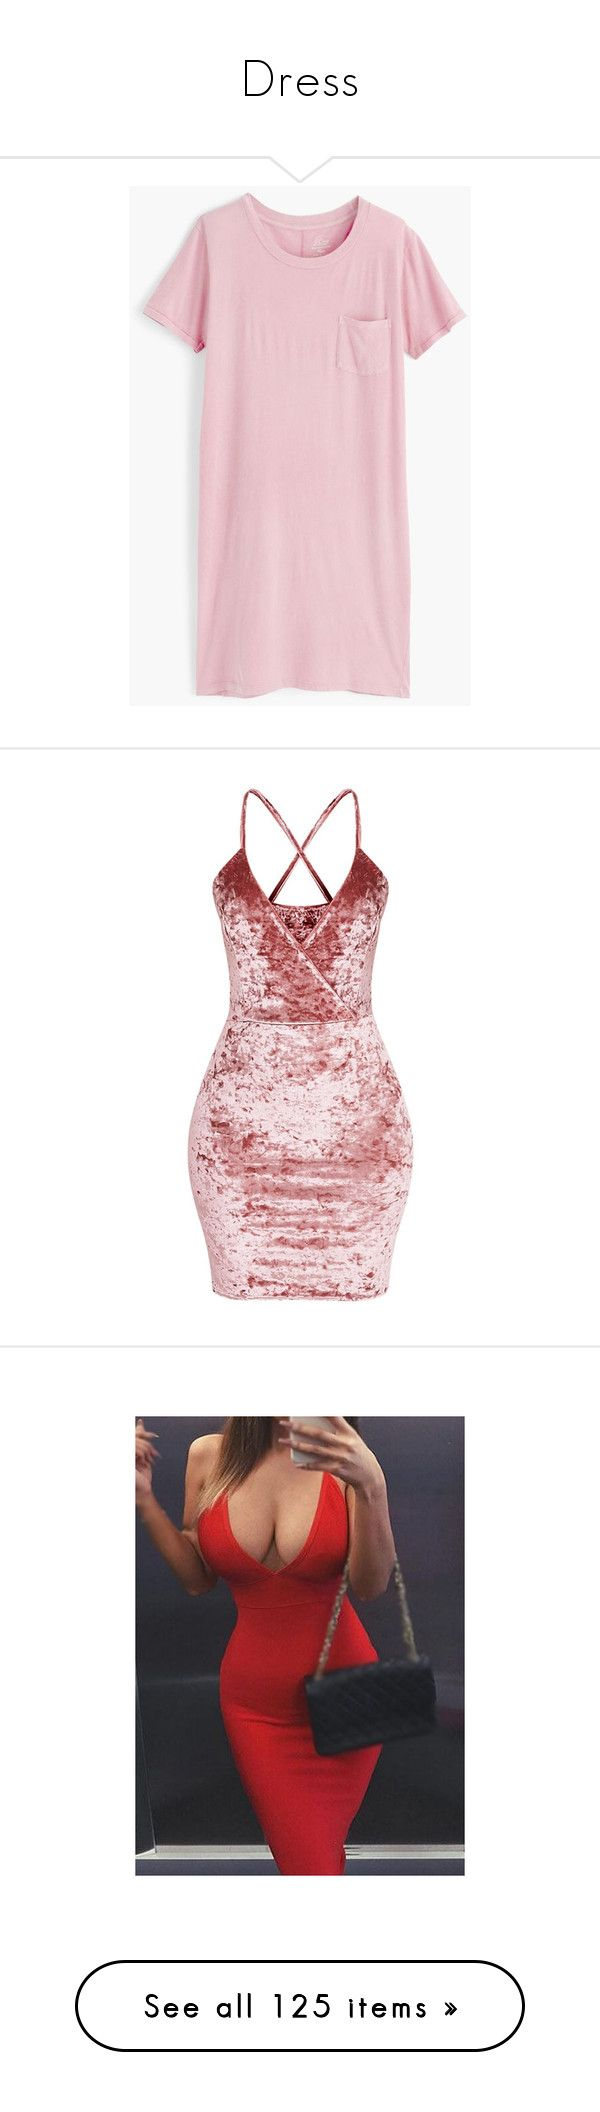 """""""Dress"""" by ashanti-chubb ❤ liked on Polyvore featuring dresses, tee dress, cotton tee shirt dress, cotton dress, loose t shirt dress, straight dresses, pink strap dress, pink bodycon dress, bodycon dress and body con dress"""